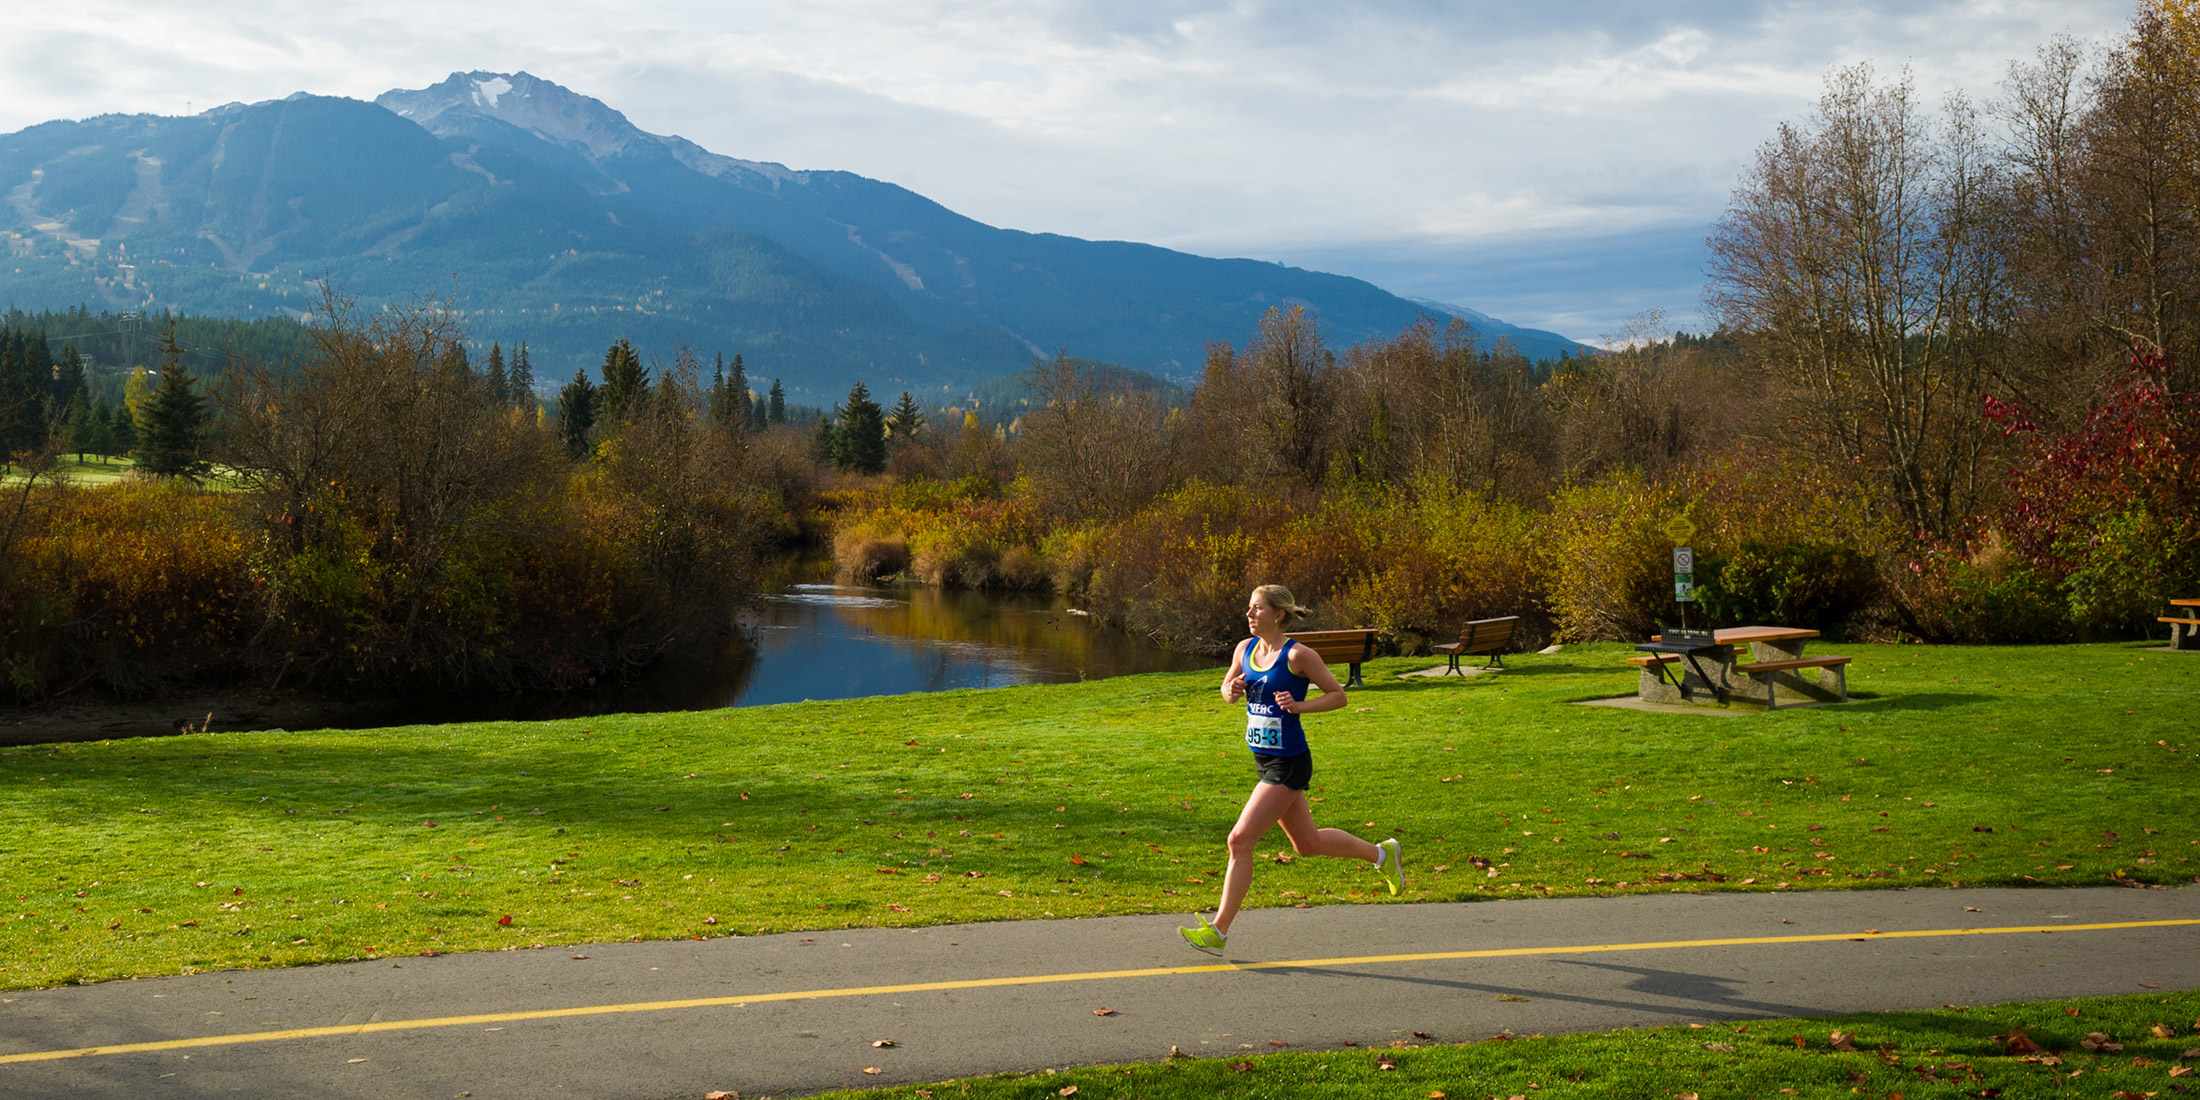 Runners in the Whistler 50 Ultramarathon